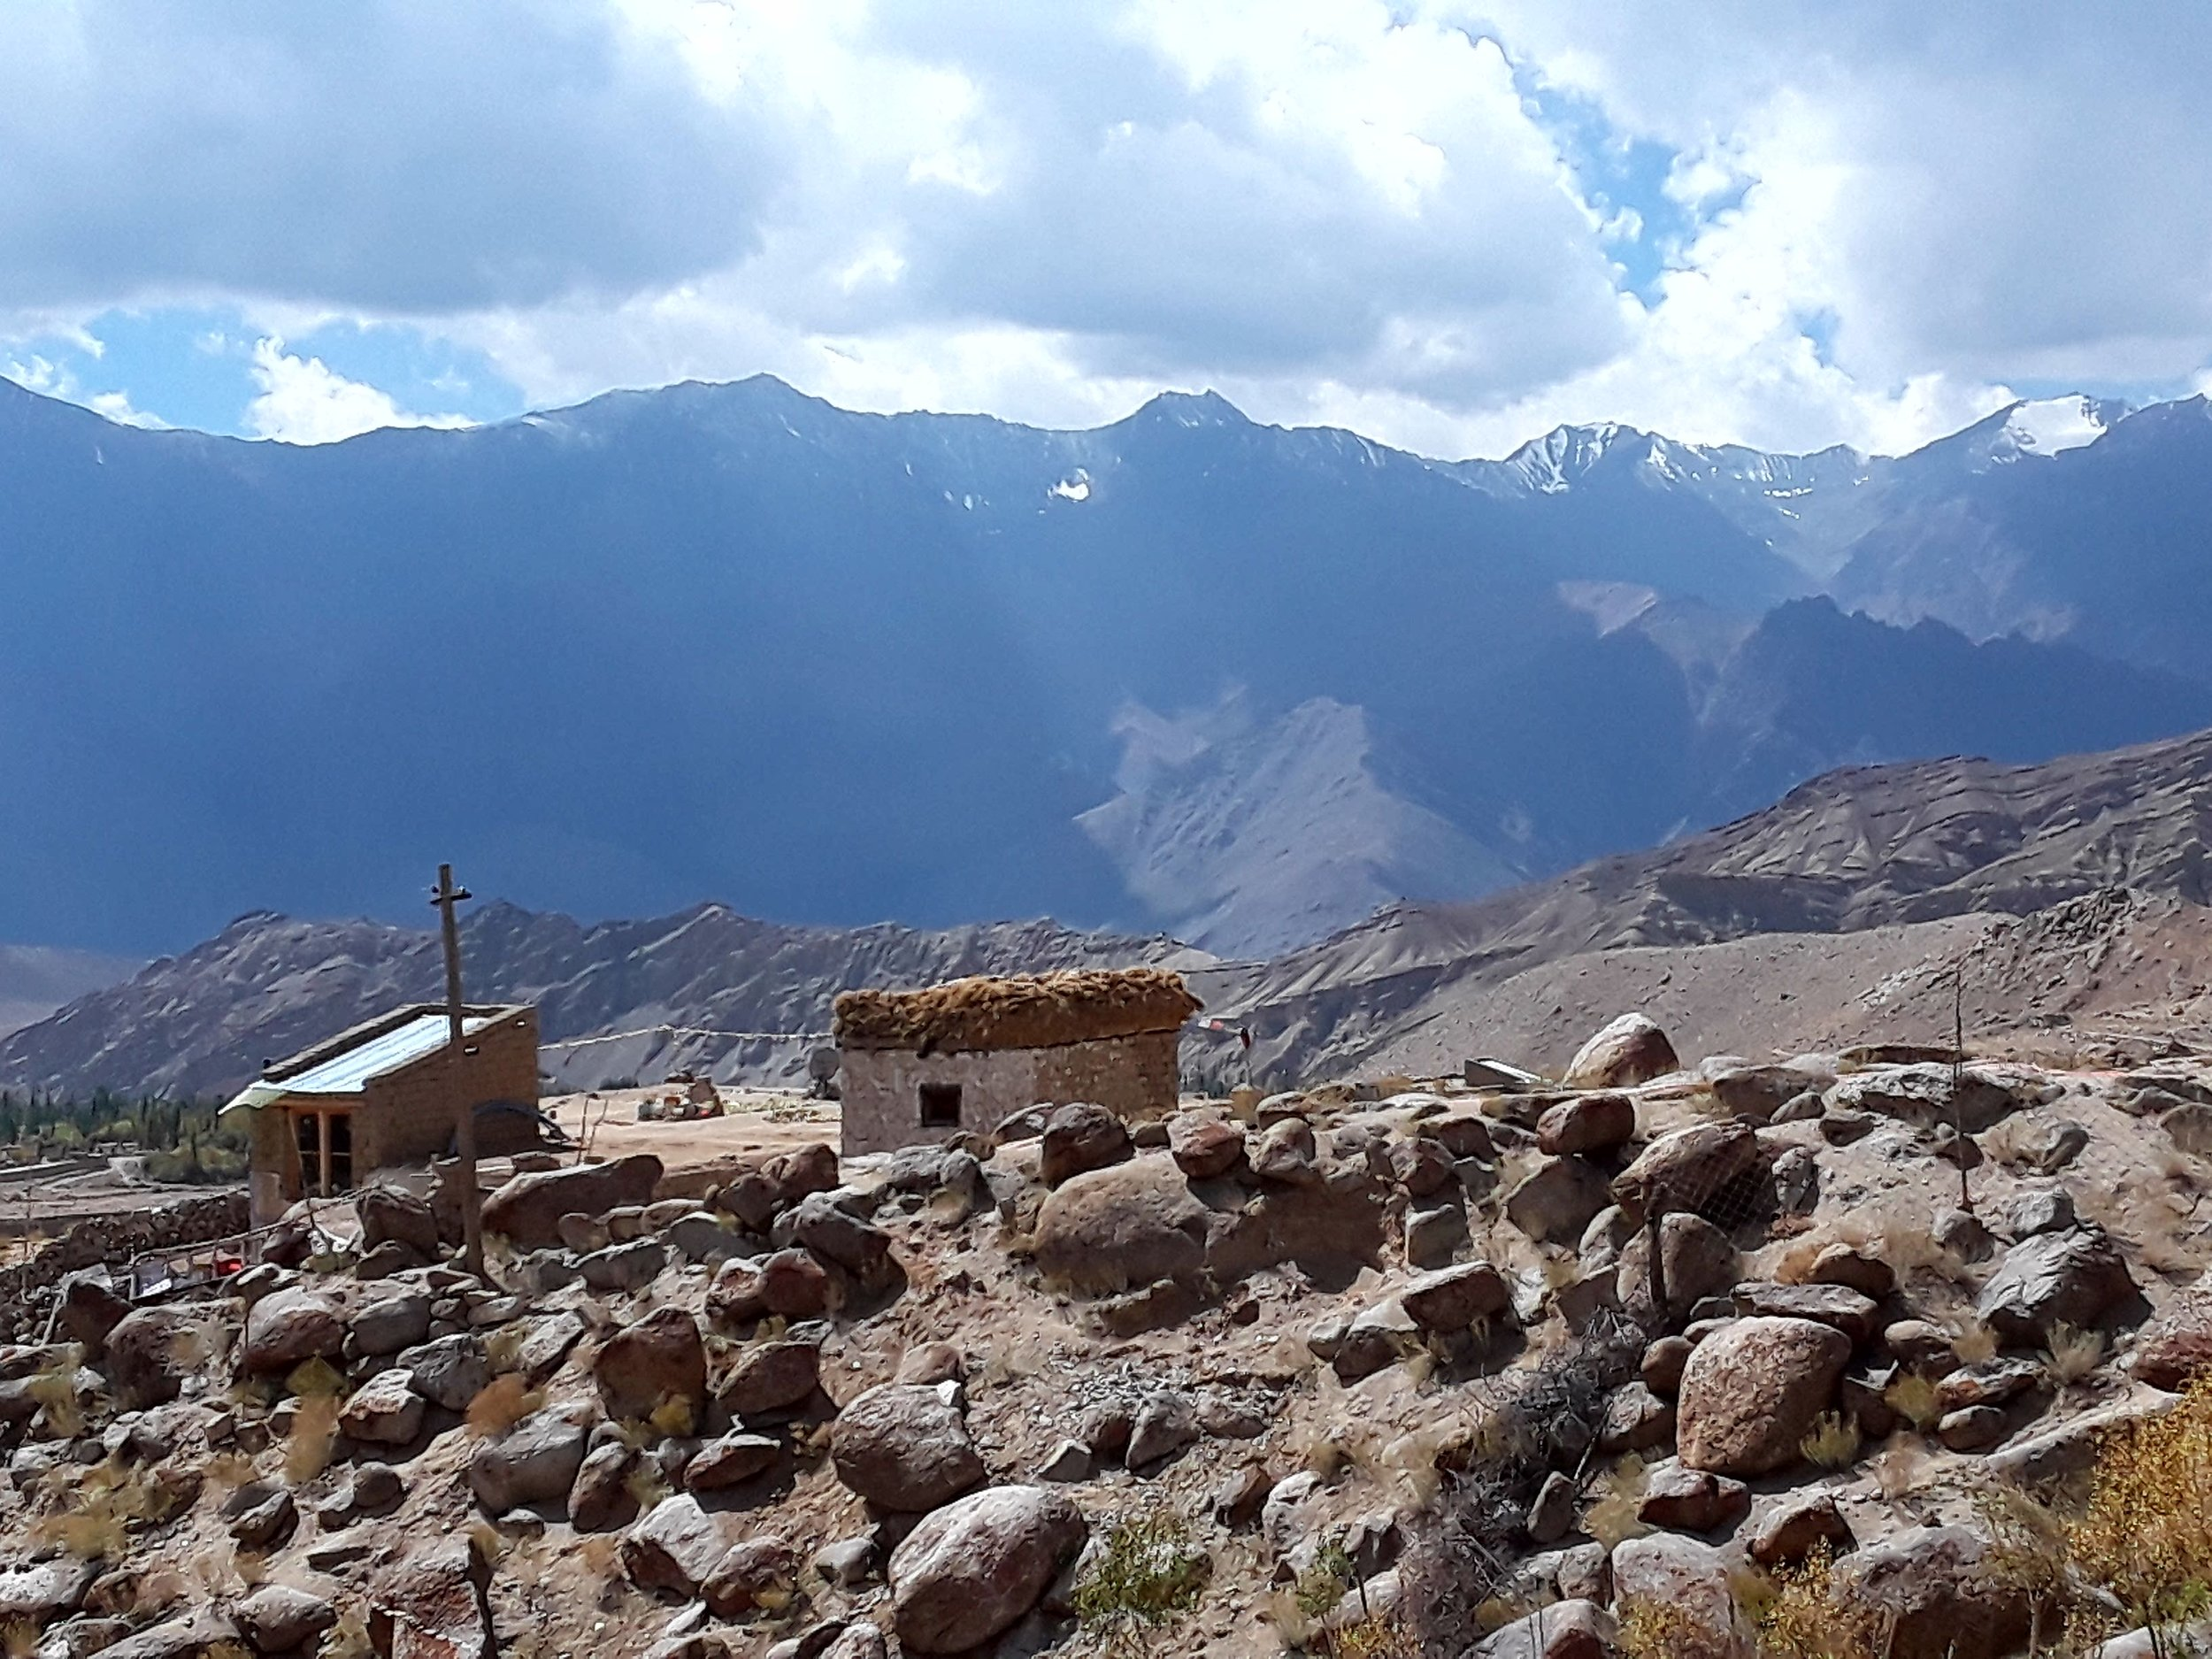 Once you leave Likir monastery behind, the Stok range becomes more prominent.